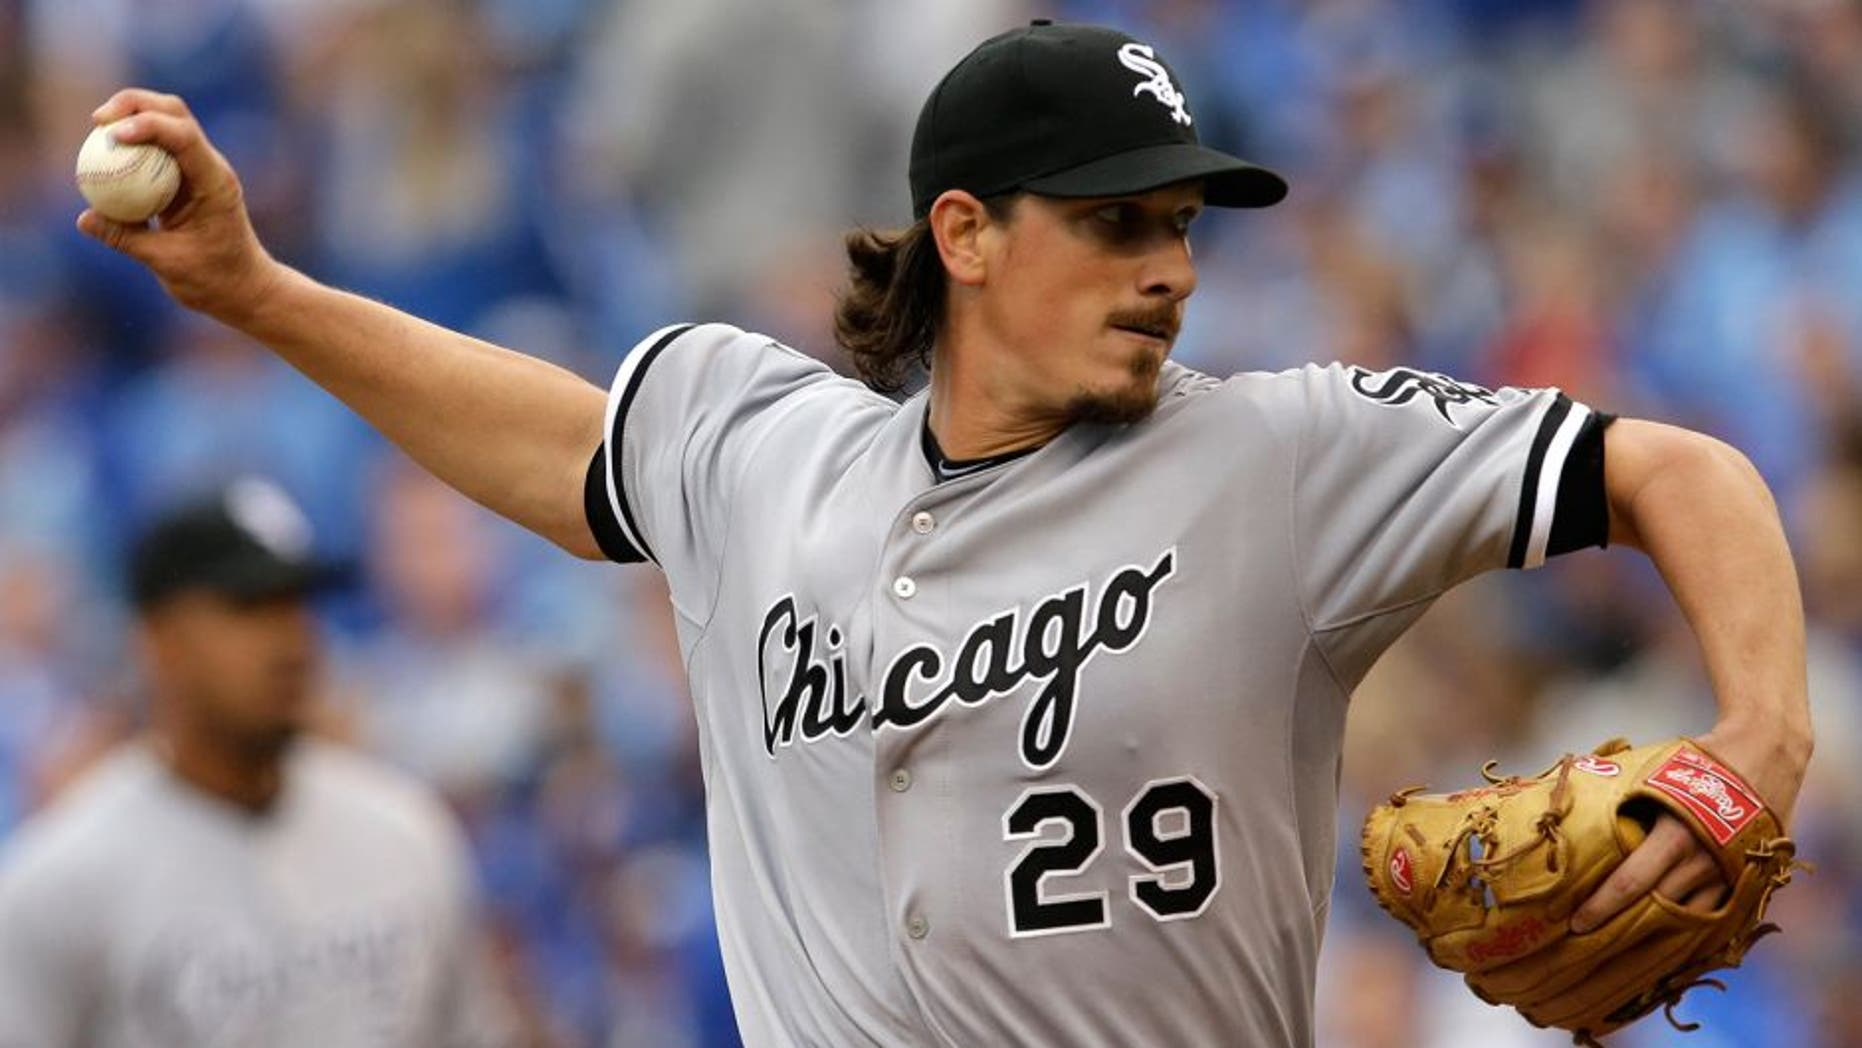 Chicago White Sox starting pitcher Jeff Samardzija (29) delivers to a Kansas City Royals batter during the first inning an opening day baseball game at Kauffman Stadium in Kansas City, Mo., Monday, April 6, 2015. (AP Photo/Orlin Wagner)